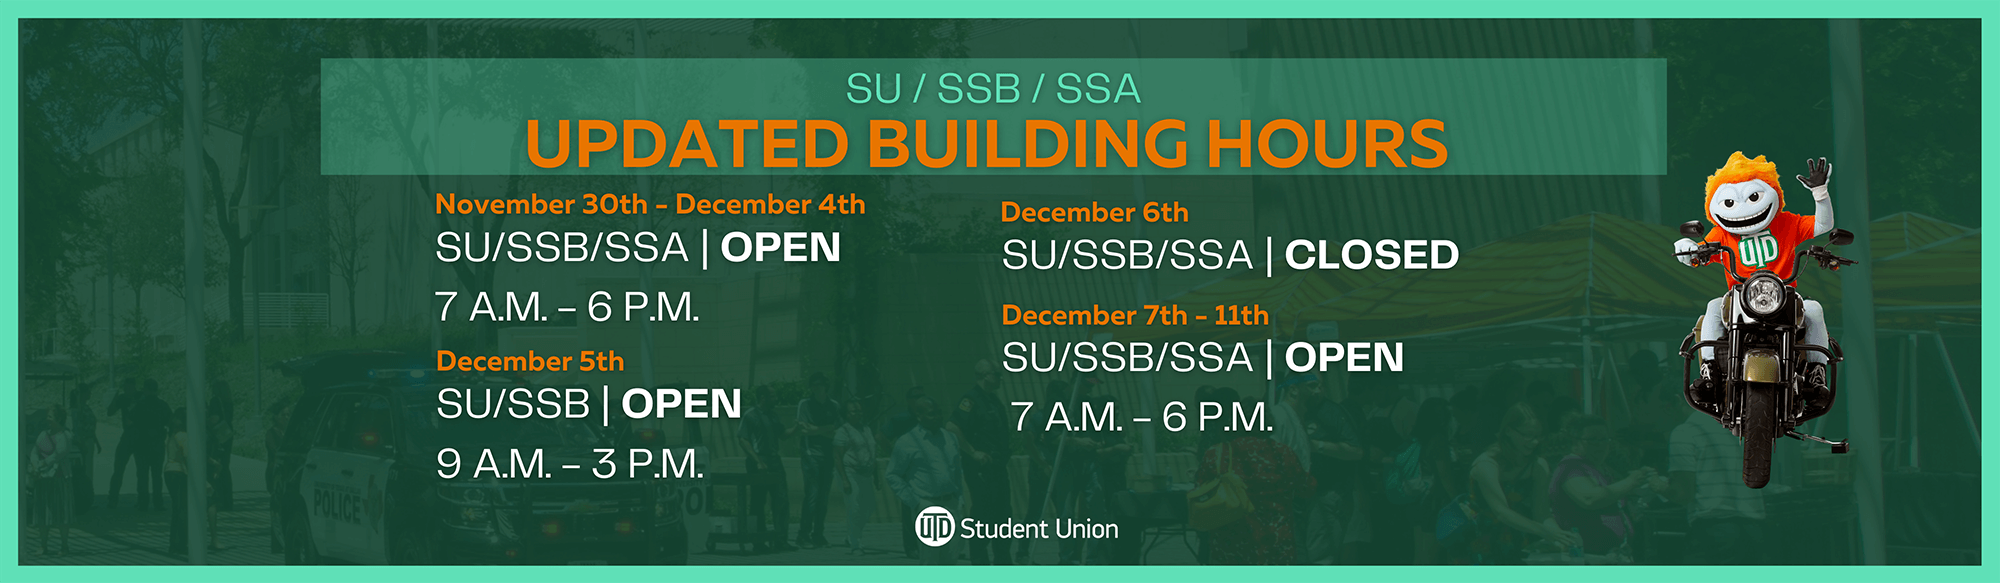 Building Hours Nov. 30 - Dec. 11